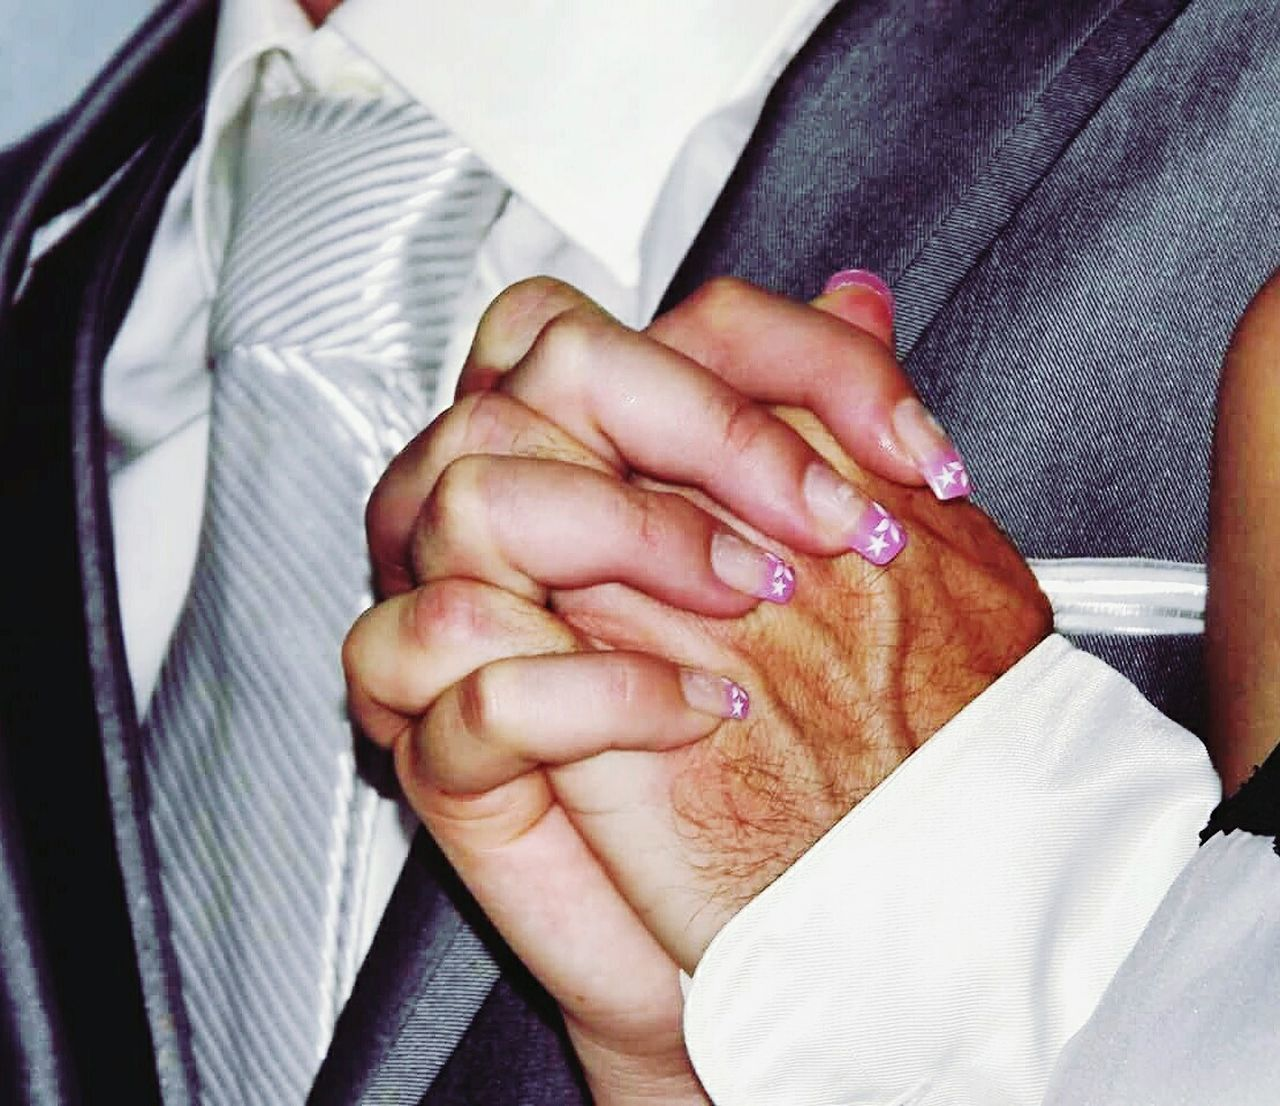 Wedding Photography Human Hand Adults Only Human Body Part Close-up People Men Adult Indoors  Hands Bridegroom